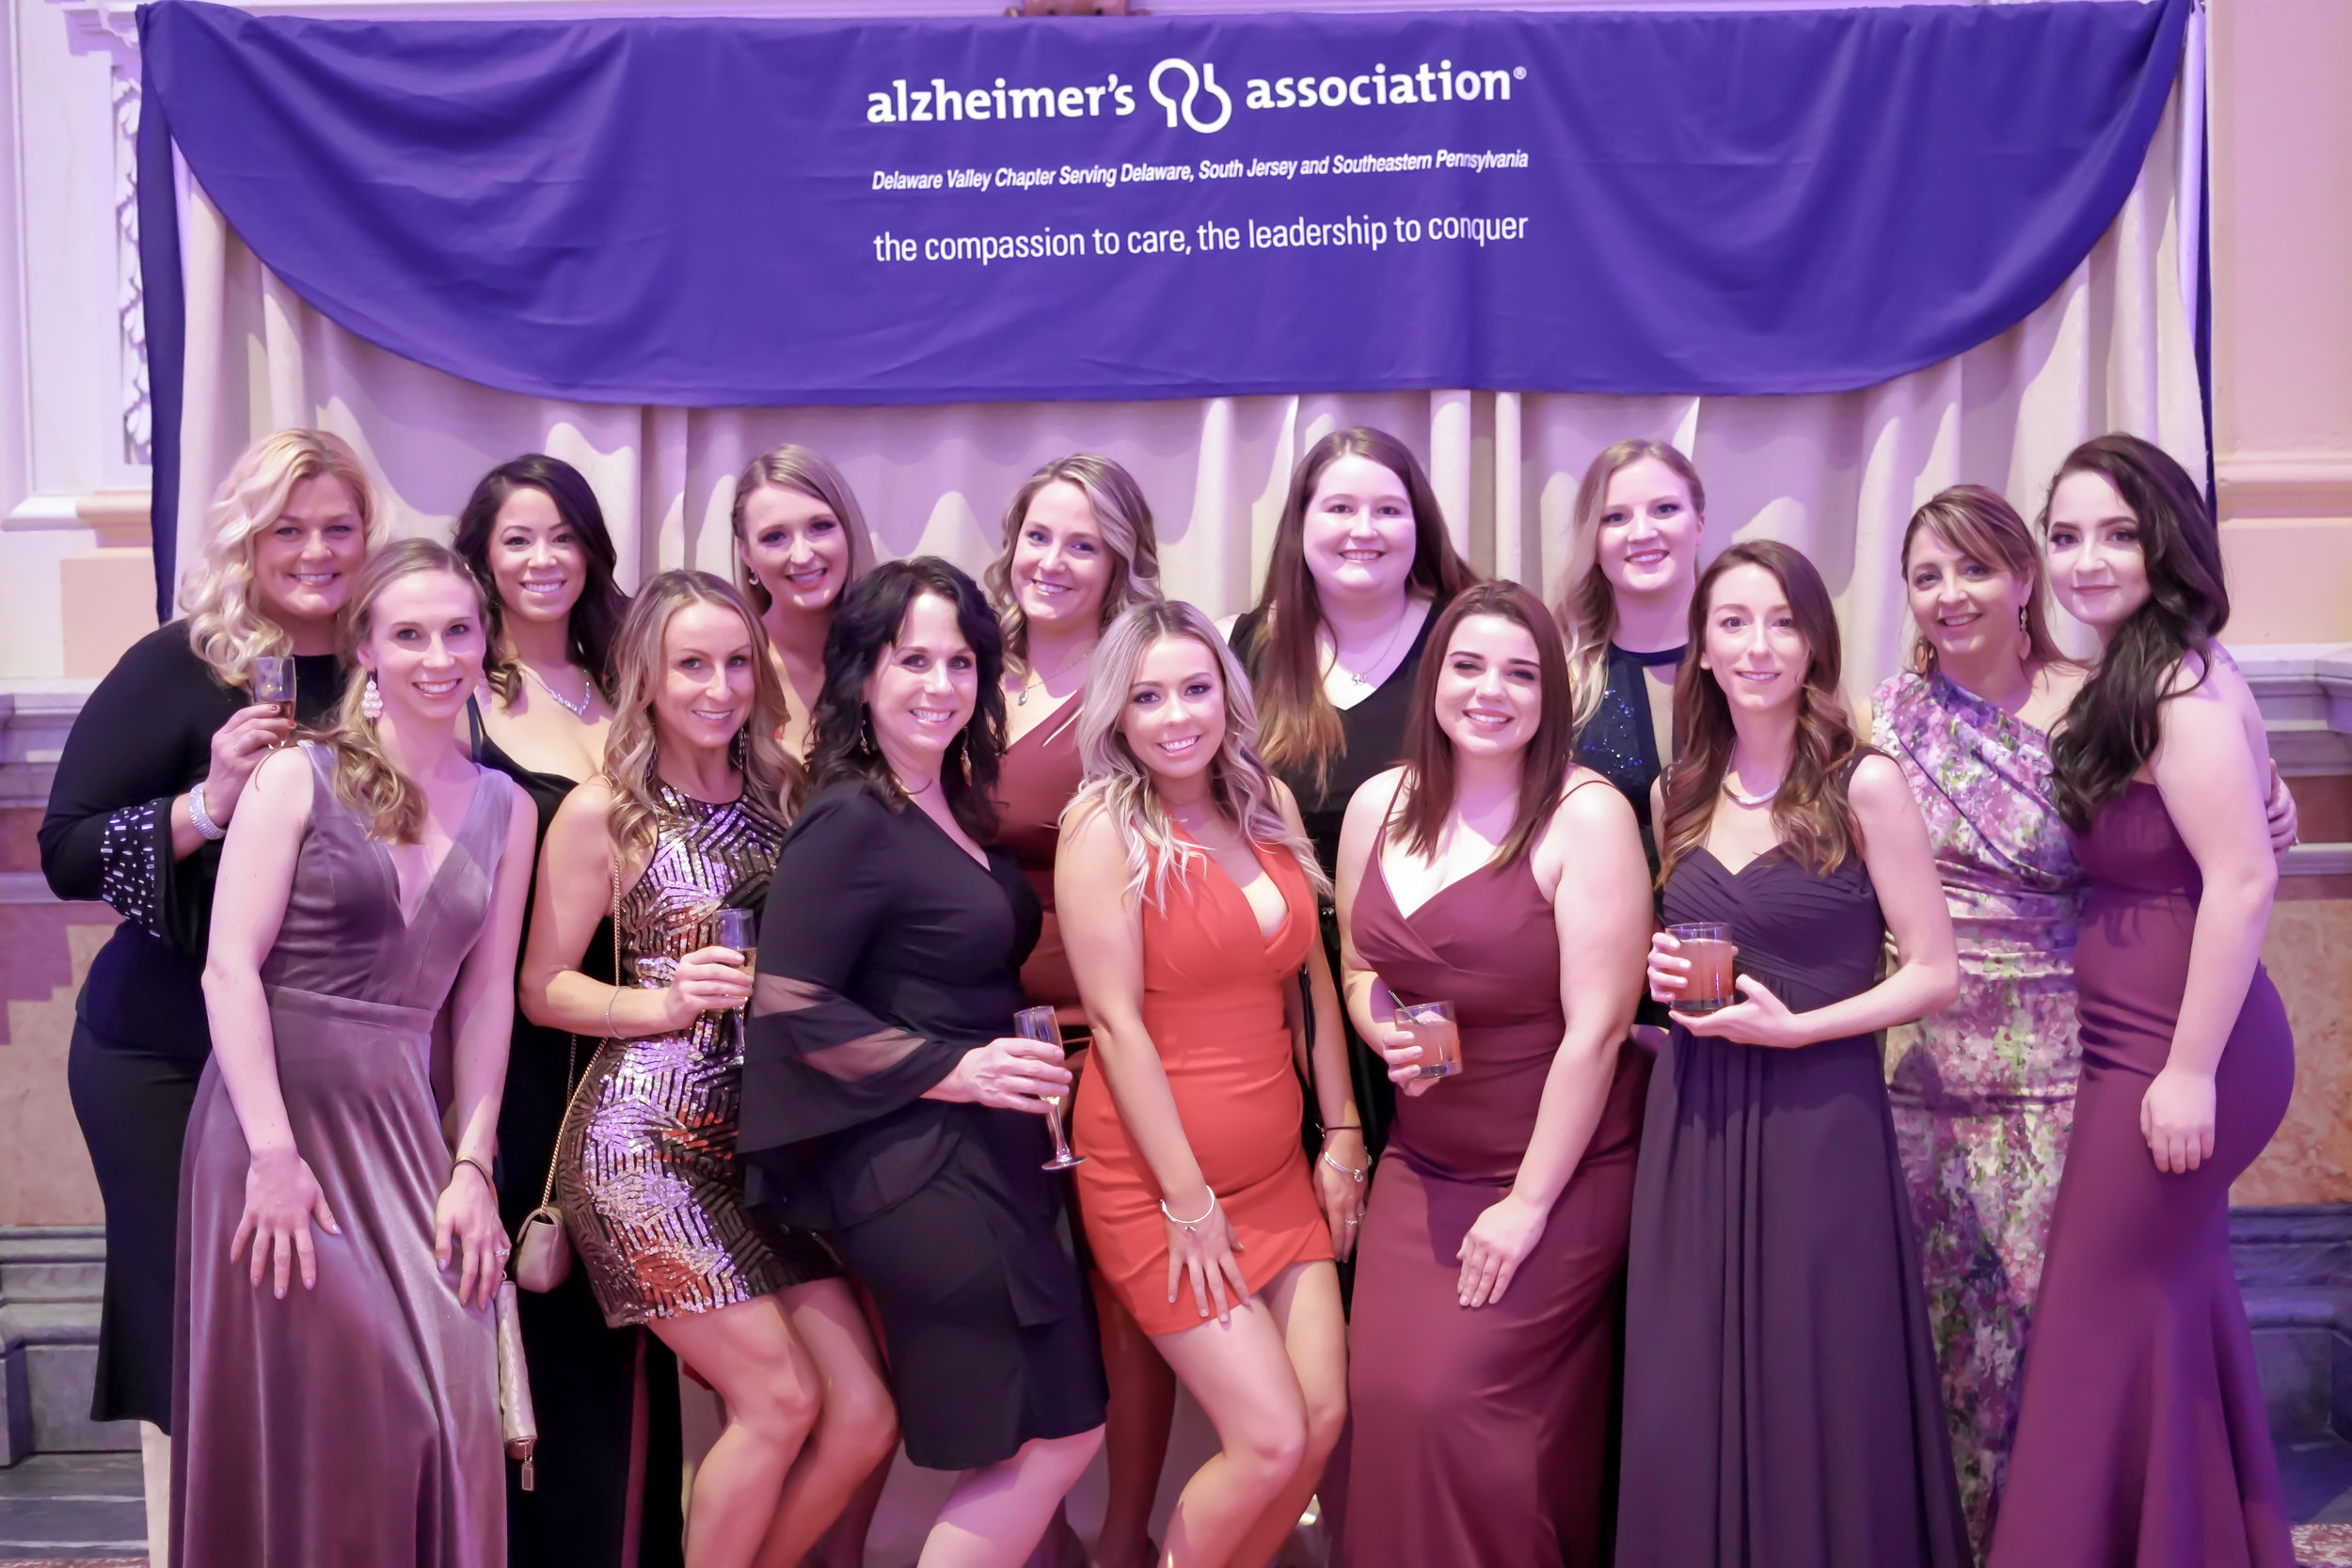 large group of friends pose for step and repeat at party in purple event